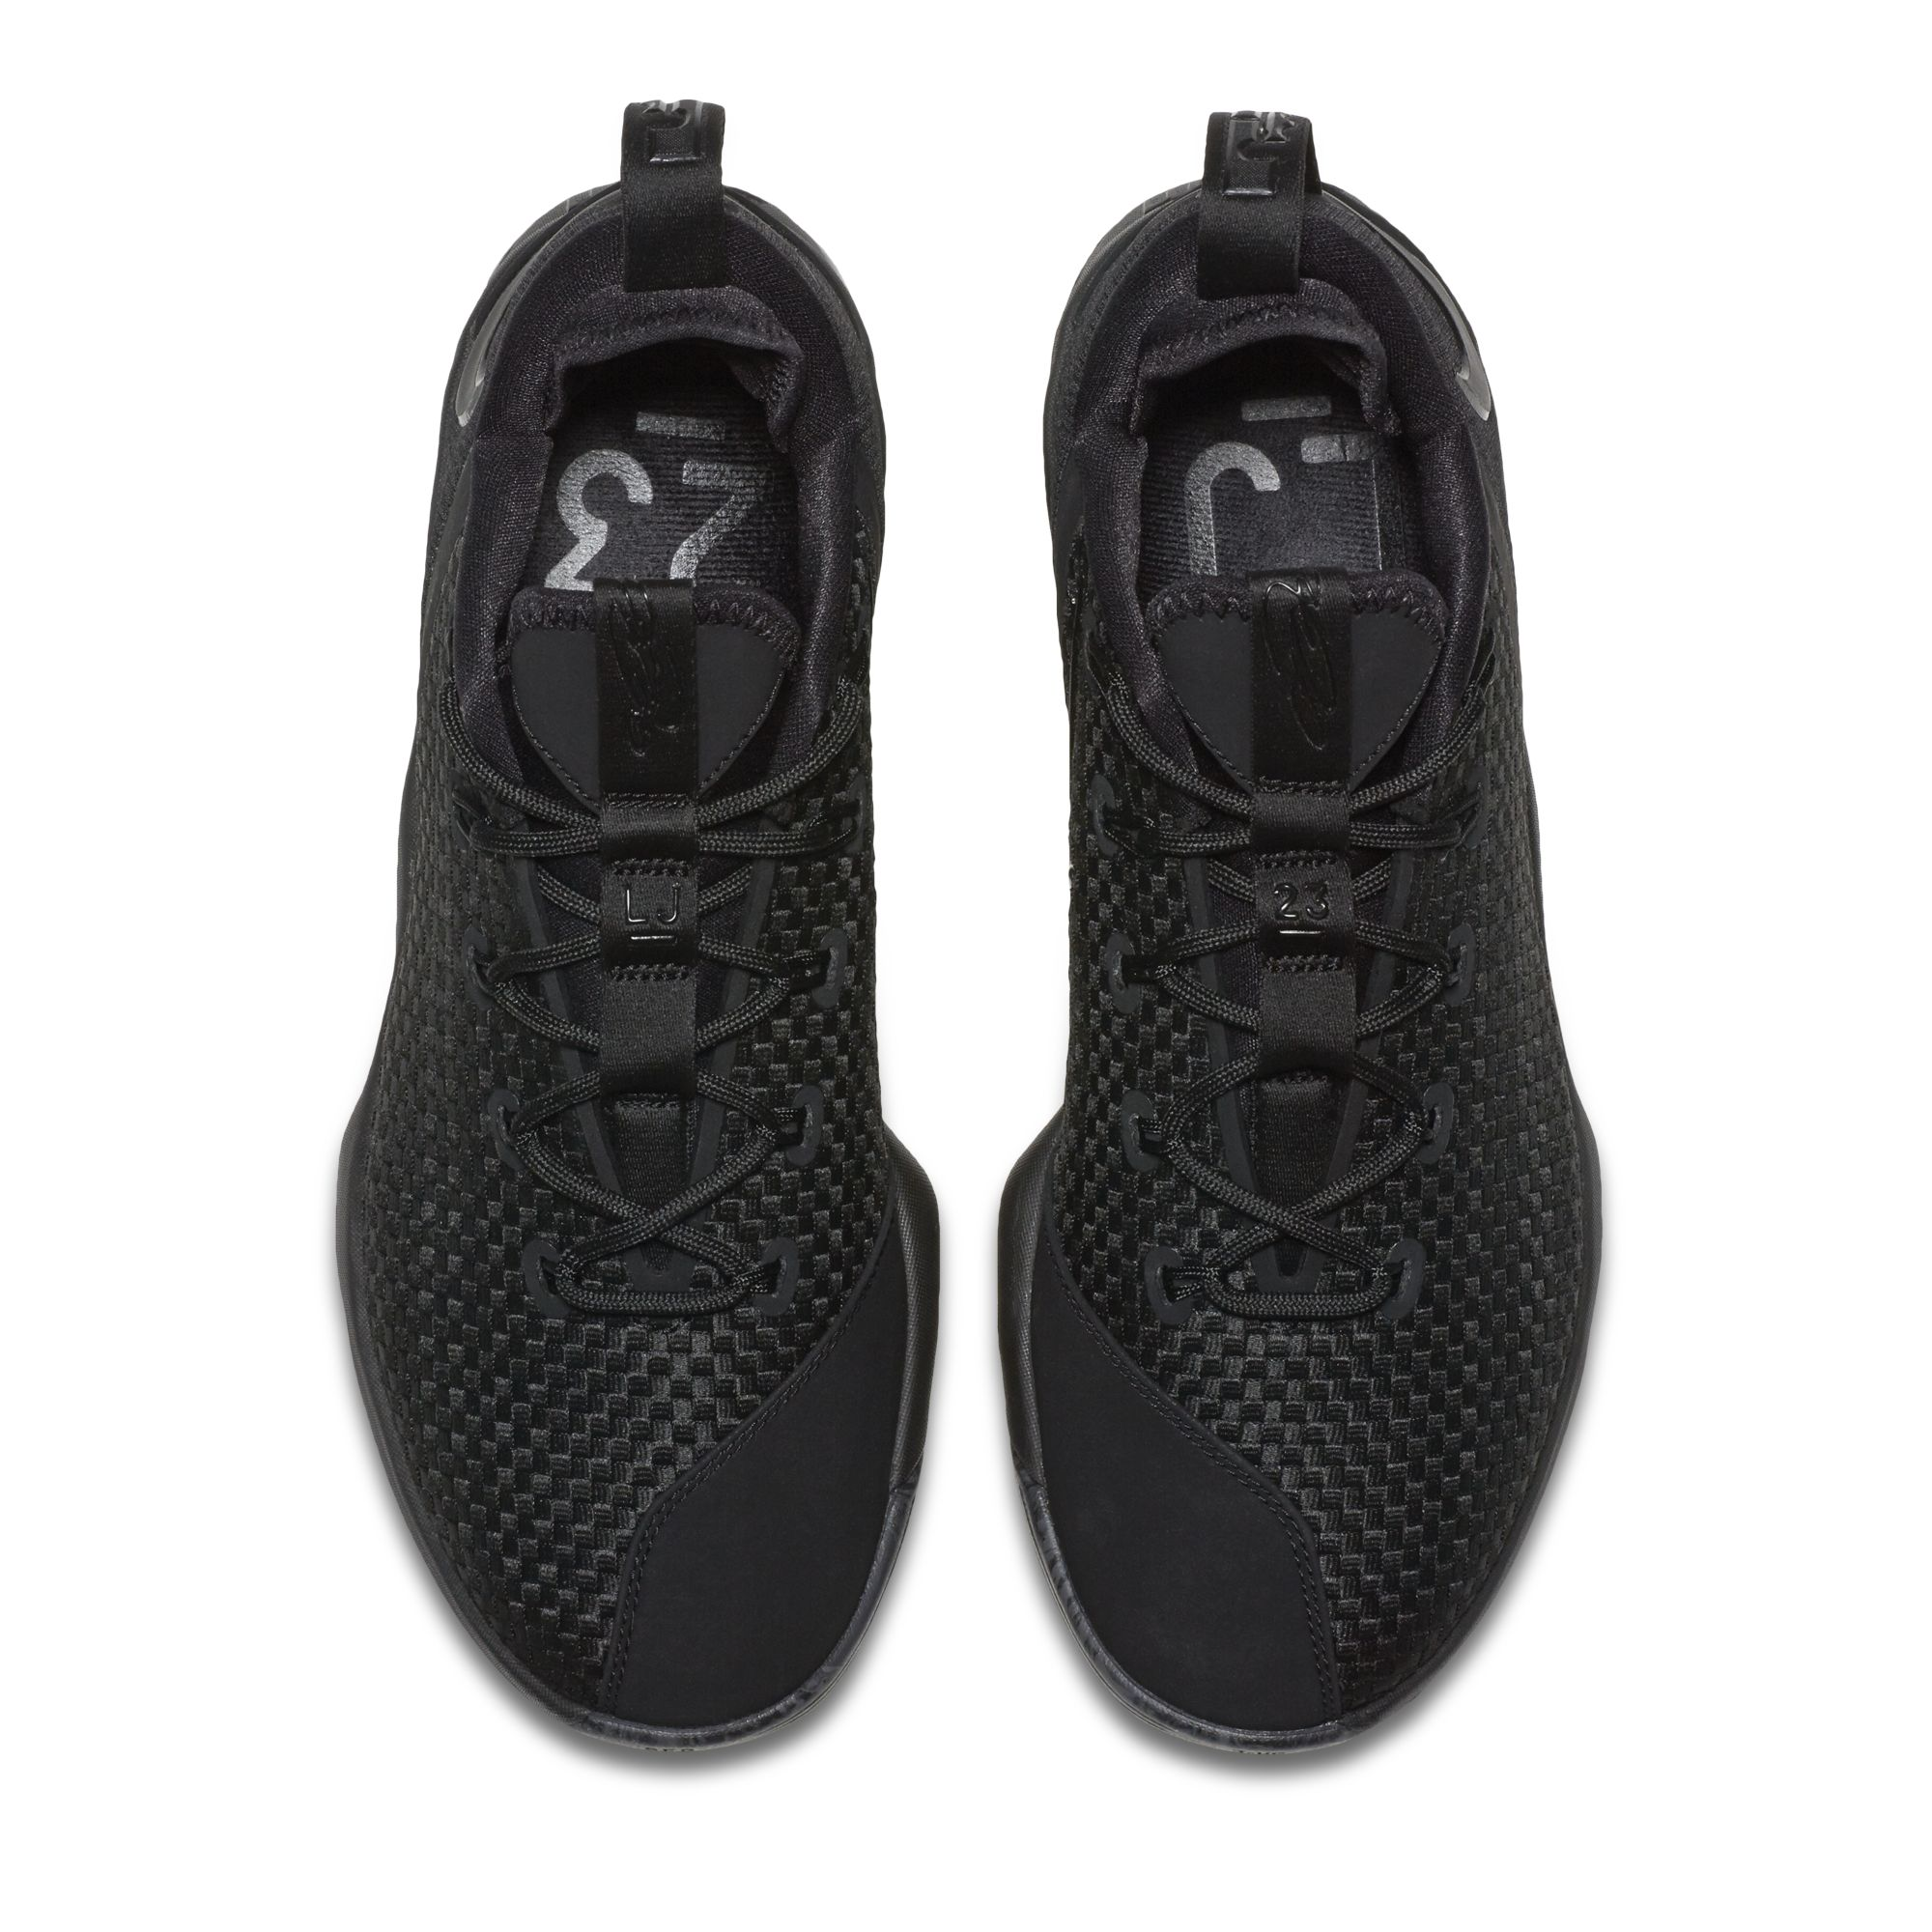 check out 0ef26 e309f ... clearance the nike lebron 14 low in triple black will release on july 8  for those